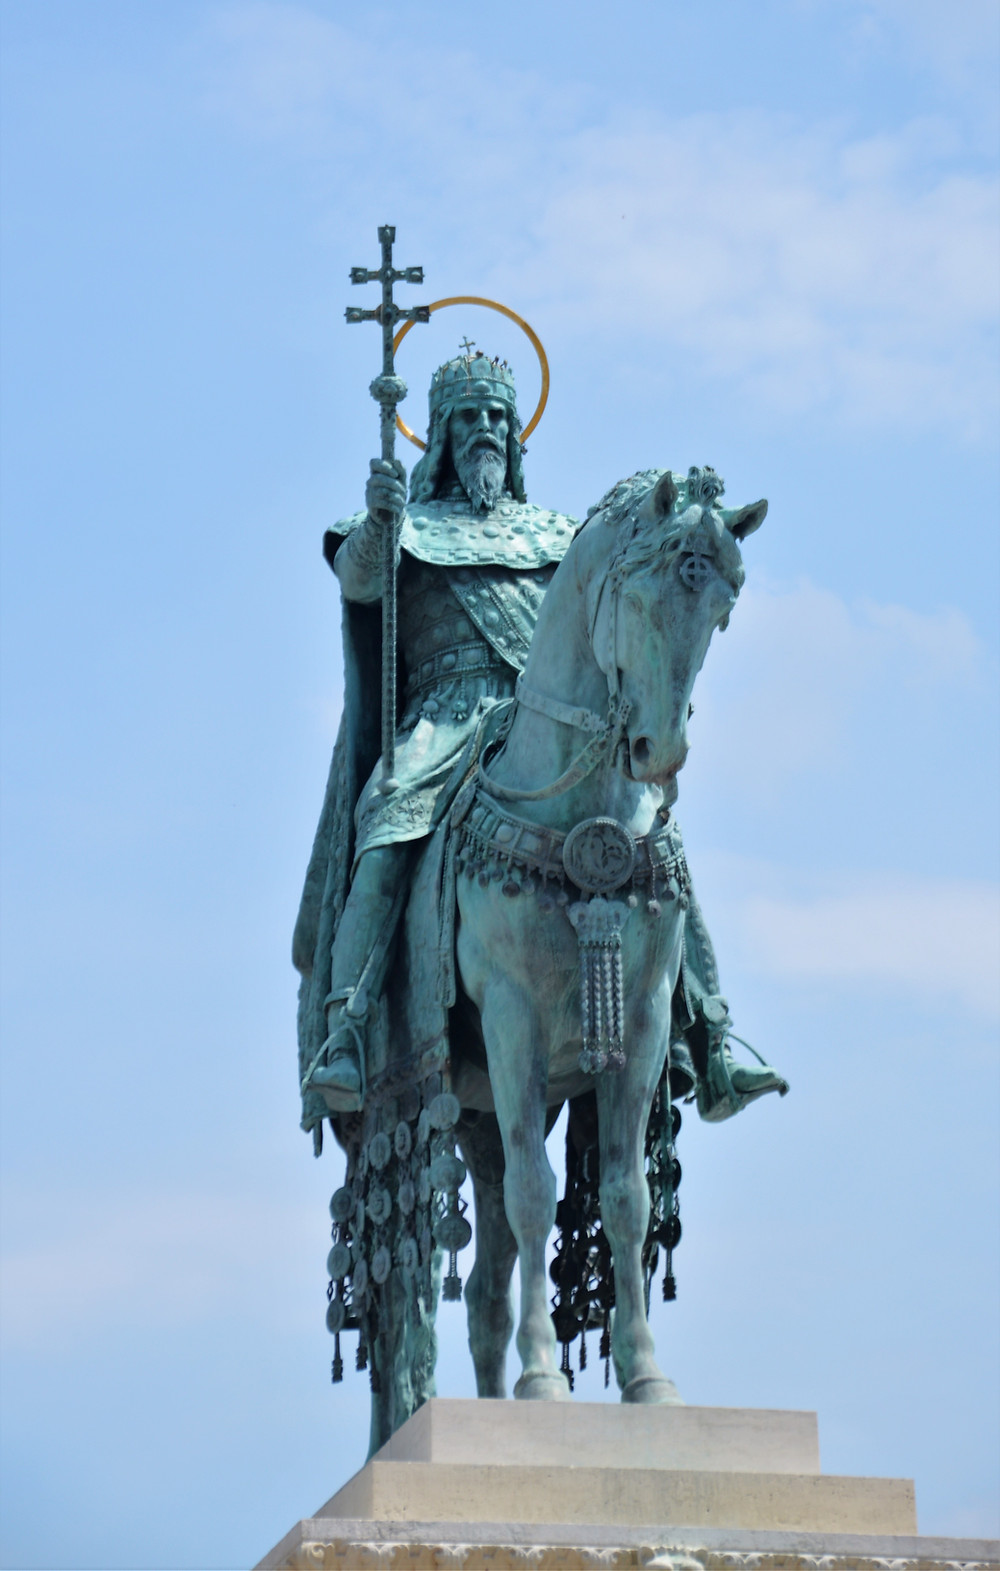 The equestrian statue of St. Stephen, first King of Hungary (1000-1038).